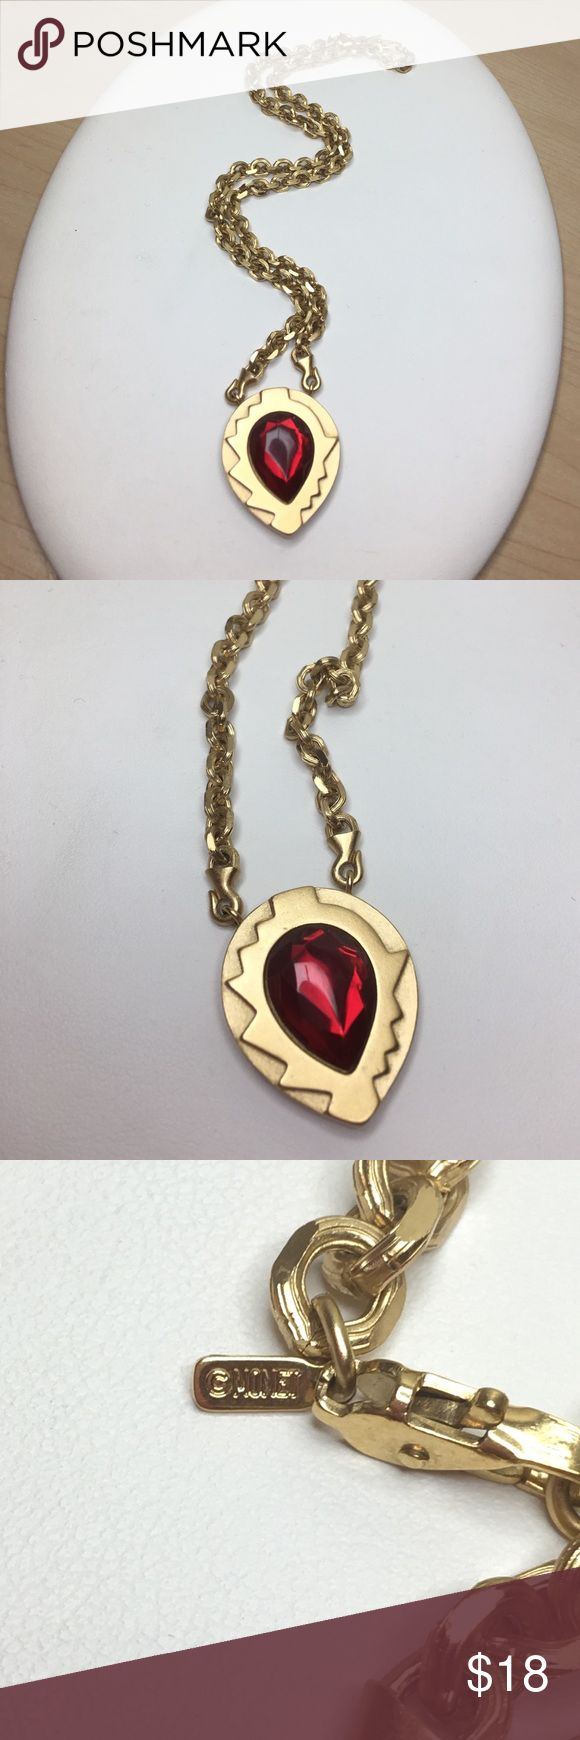 """Vintage Monet Gold and Red Rhinestone Necklace A 1 1/4"""" x 1"""" pear-shaped gold pendant with a large faceted glass rhinestone pendant, strung on an 18"""" thick gold chain with a lobster clasp. Marked as shown at the clasp and on the back of the pendant. Totally 80s style, especially with the modernist style of the pendant! A very cool piece, in excellent vintage condition. Vintage Jewelry Necklaces"""